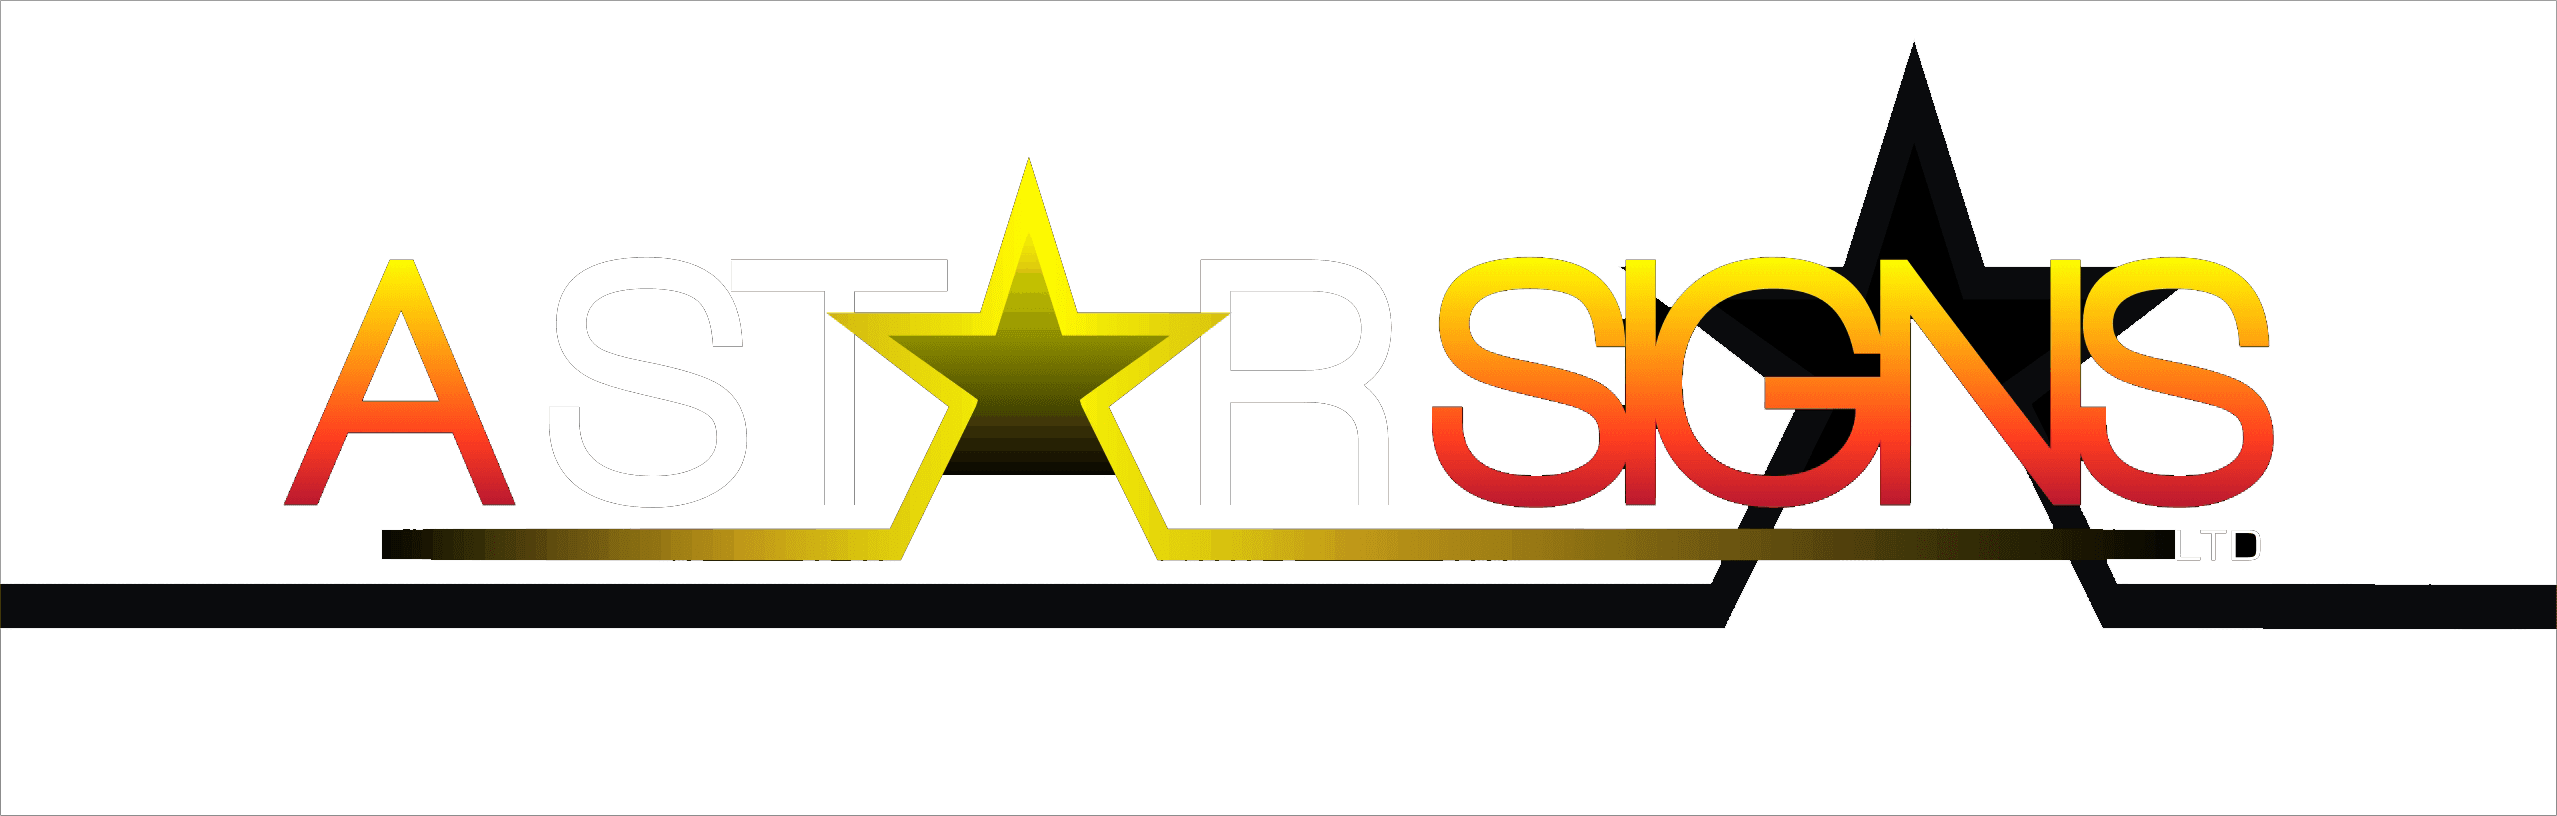 A Star Signs Ltd logo